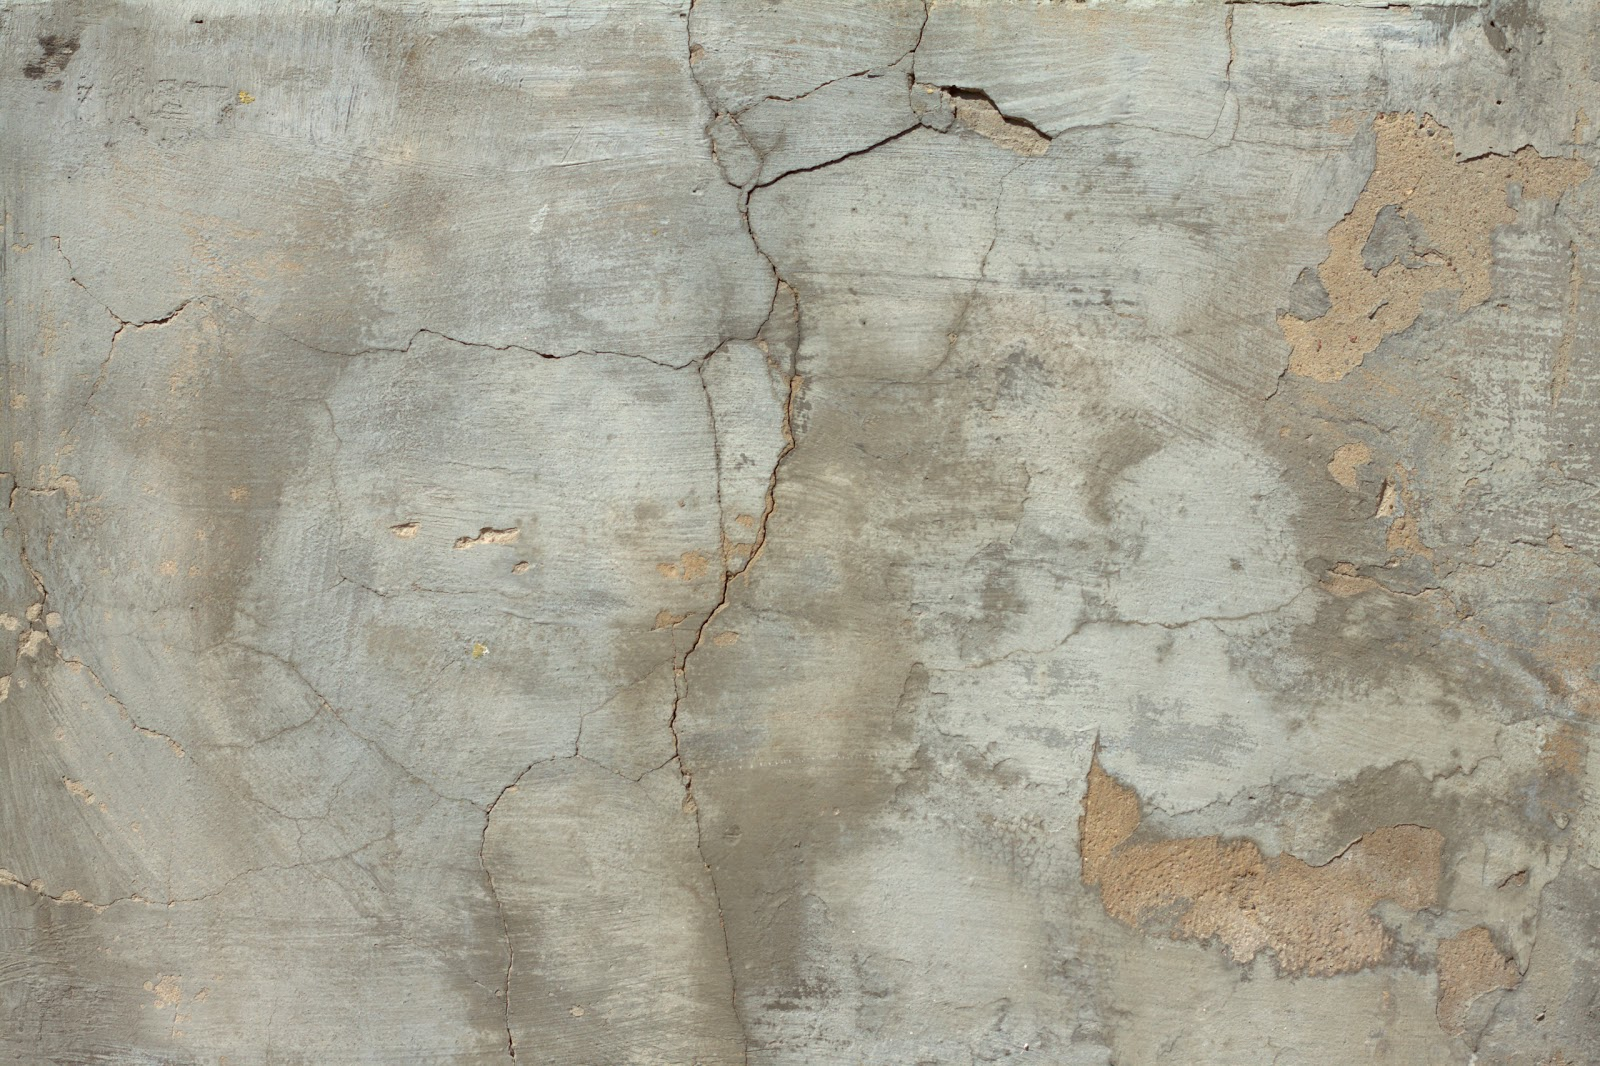 Stucco dirty crack rough stucco plaster wall paper texture 8